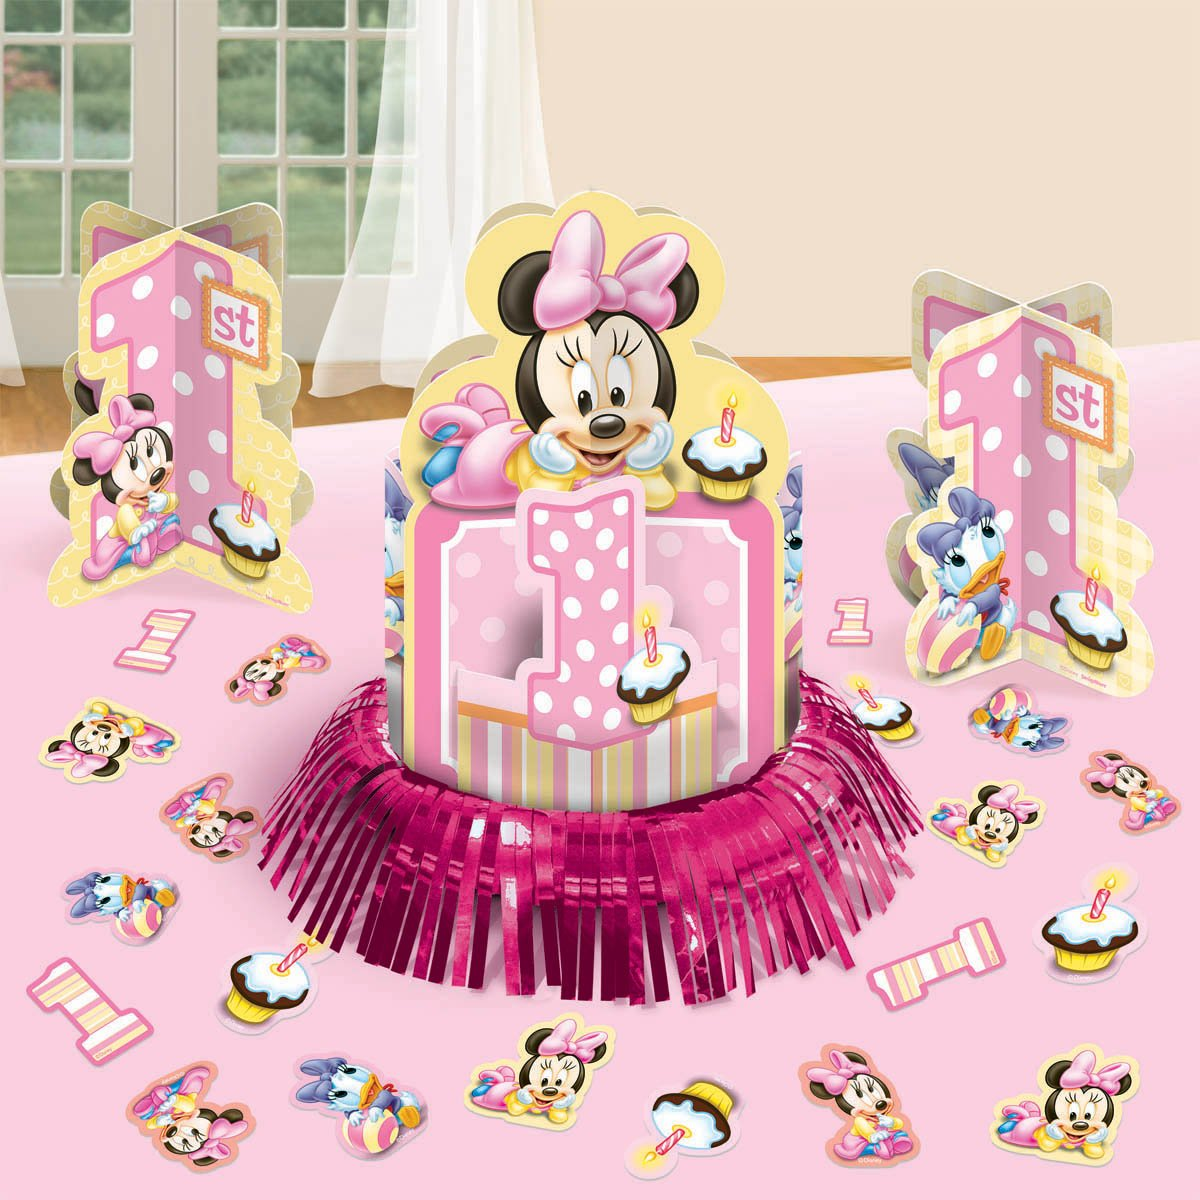 Baby minnie mouse decorations best baby decoration for Baby minnie mouse decoration ideas